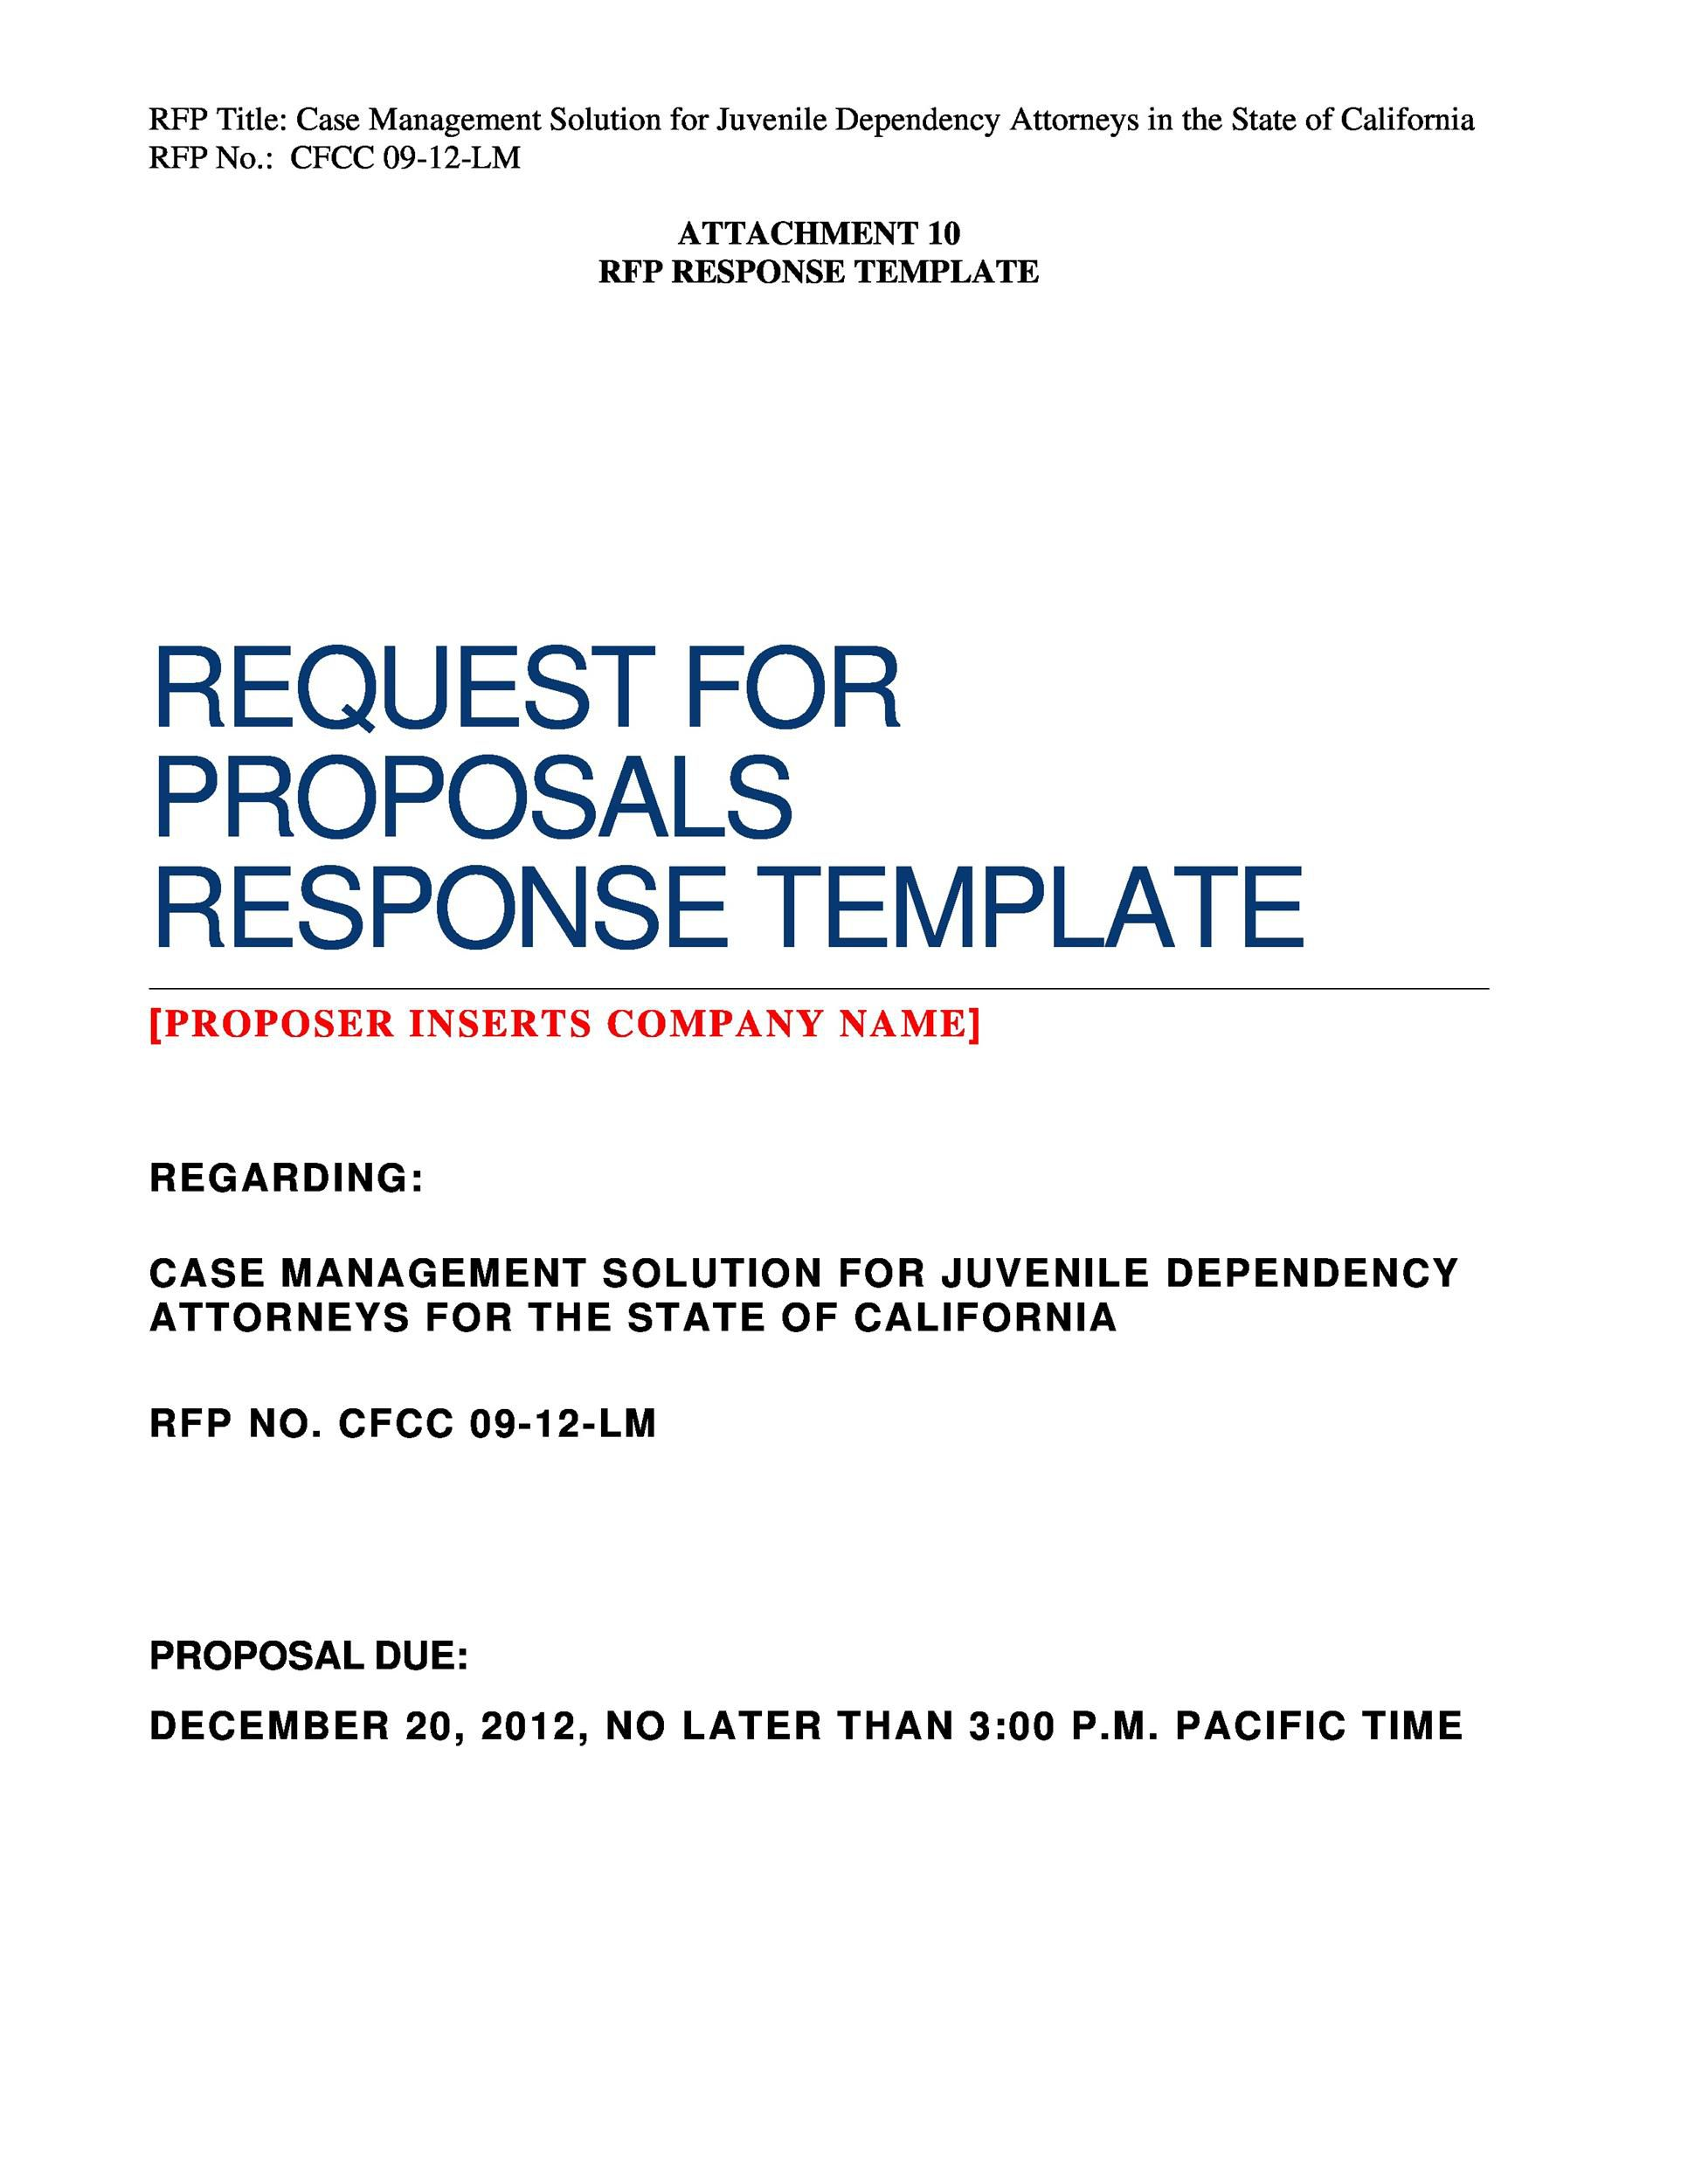 005 Imposing Request For Proposal Response Word Template Design Full